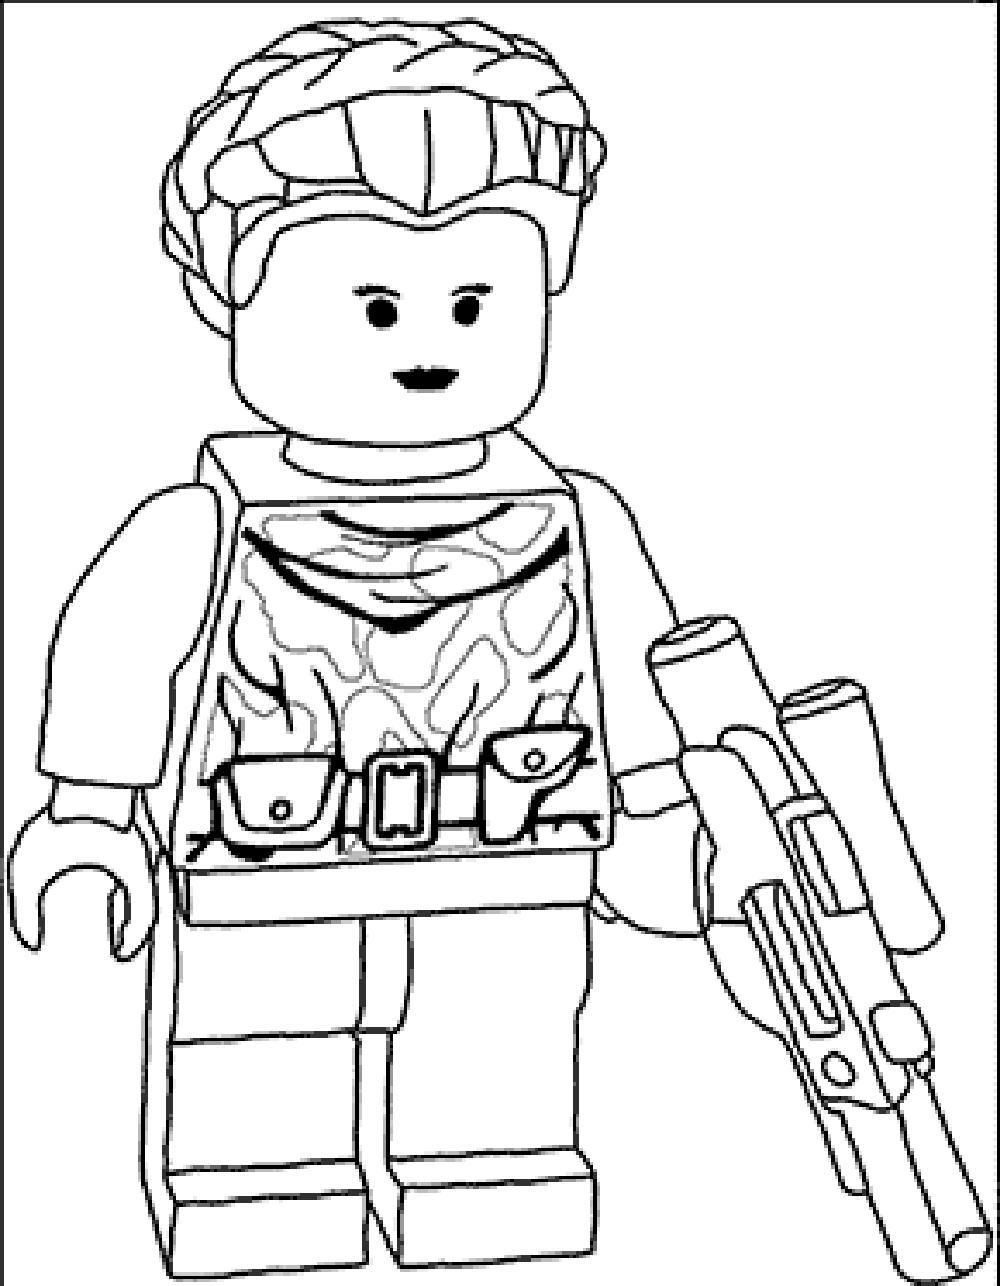 Lego Star Wars Coloring Pages To Print Star Wars Coloring Sheet Lego Coloring Pages Lego Coloring